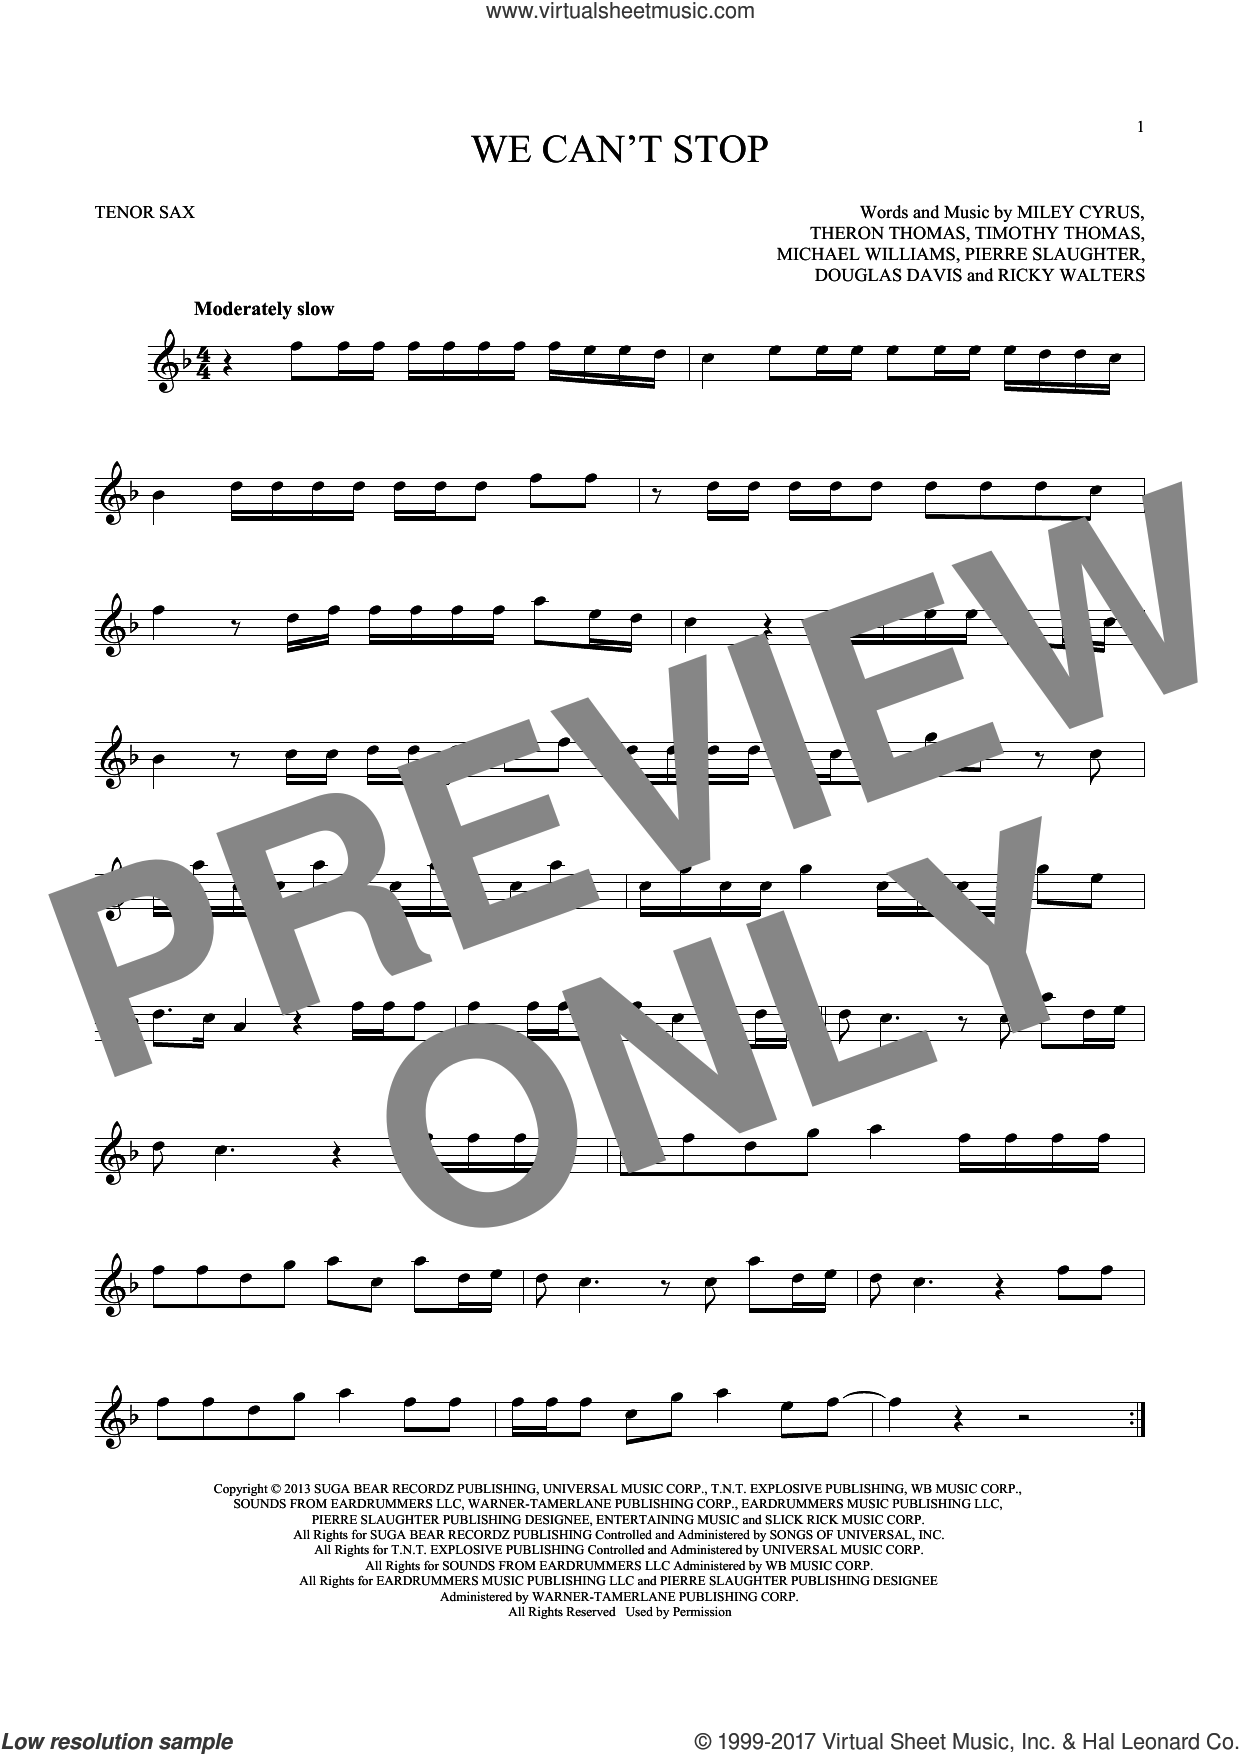 We Can't Stop sheet music for tenor saxophone solo ( Sax) by Miley Cyrus, Douglas Davis, Michael Williams, Pierre Slaughter, Ricky Walters, Theron Thomas and Timmy Thomas, intermediate tenor saxophone ( Sax)